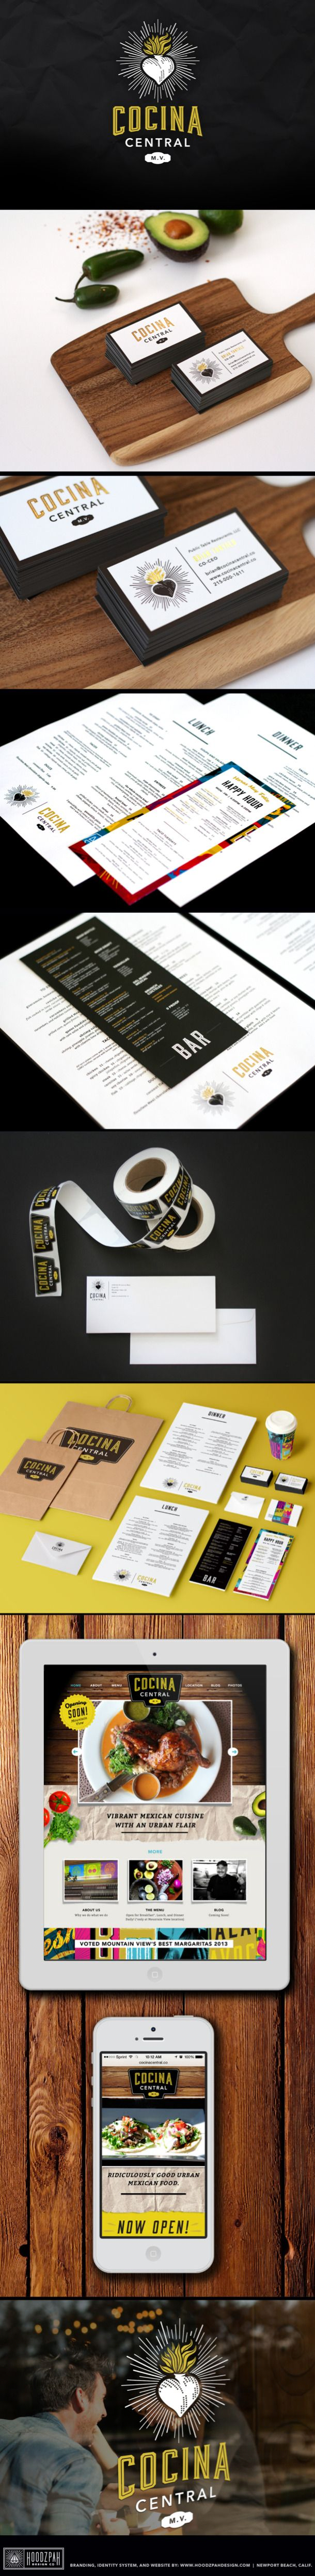 Cocina Central: Identity, Branding & Web Design by Hoodzpah Design Co.